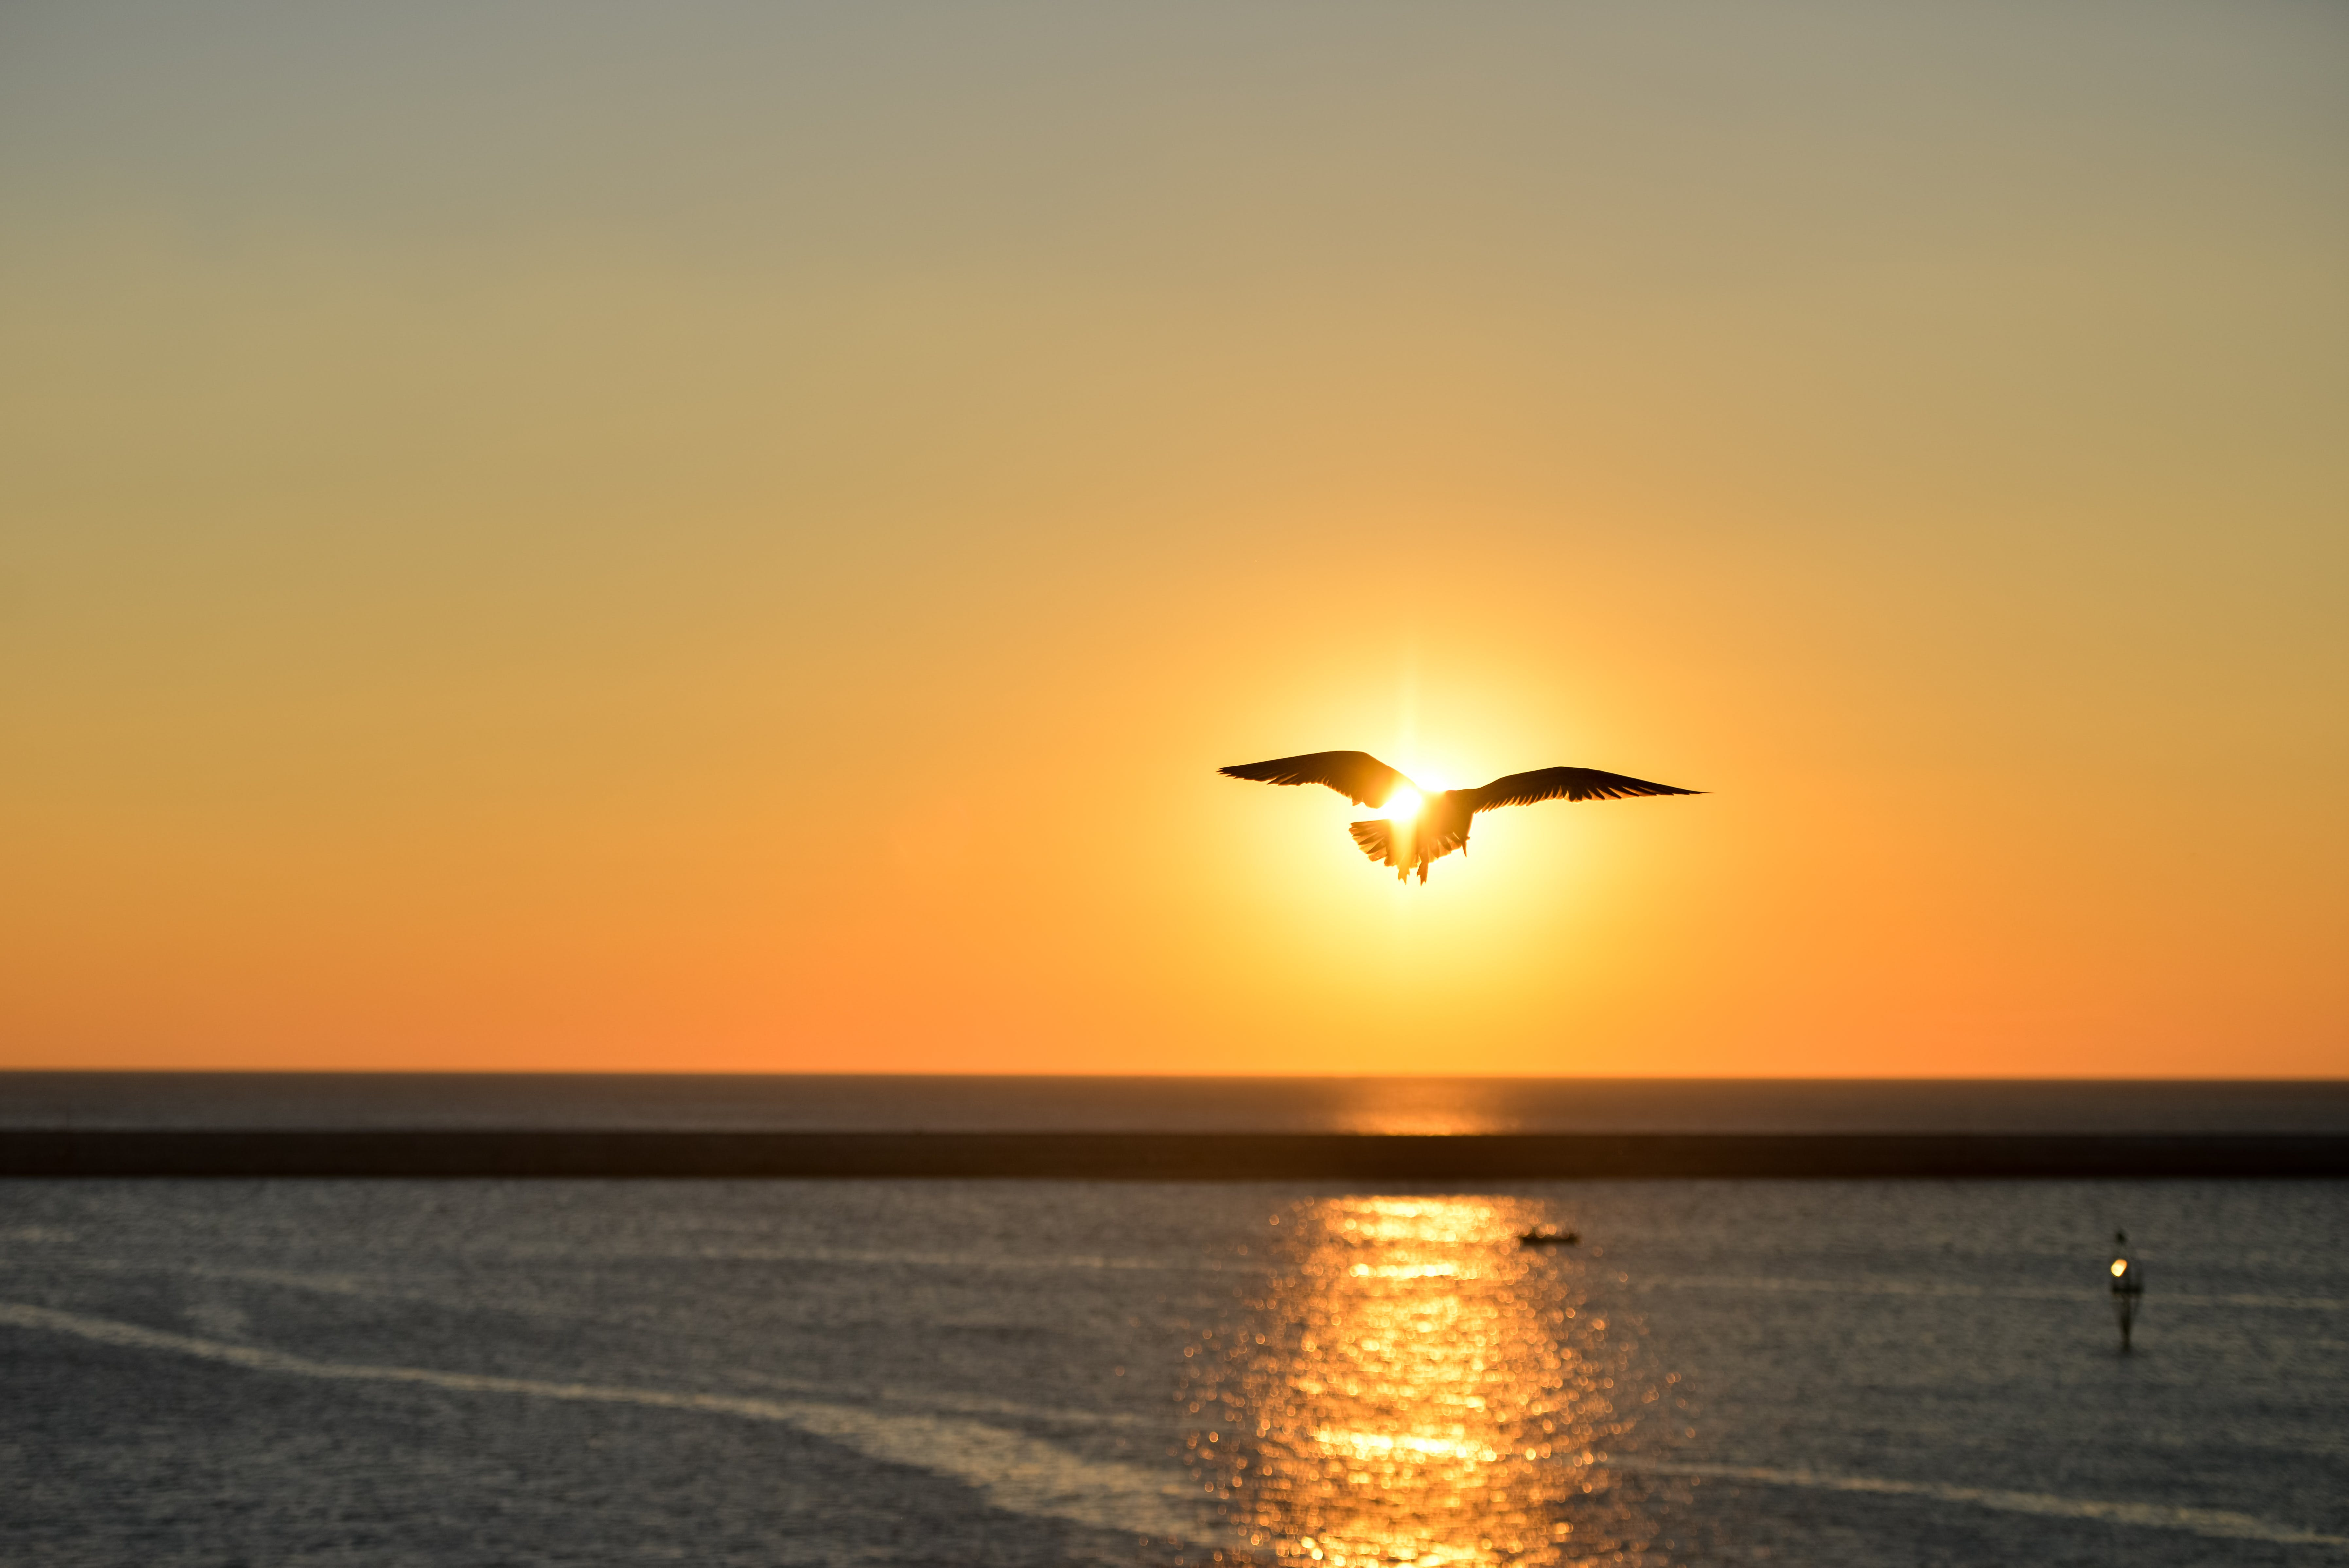 Silhouette of Seagull Flying Above Large Body of Water ...